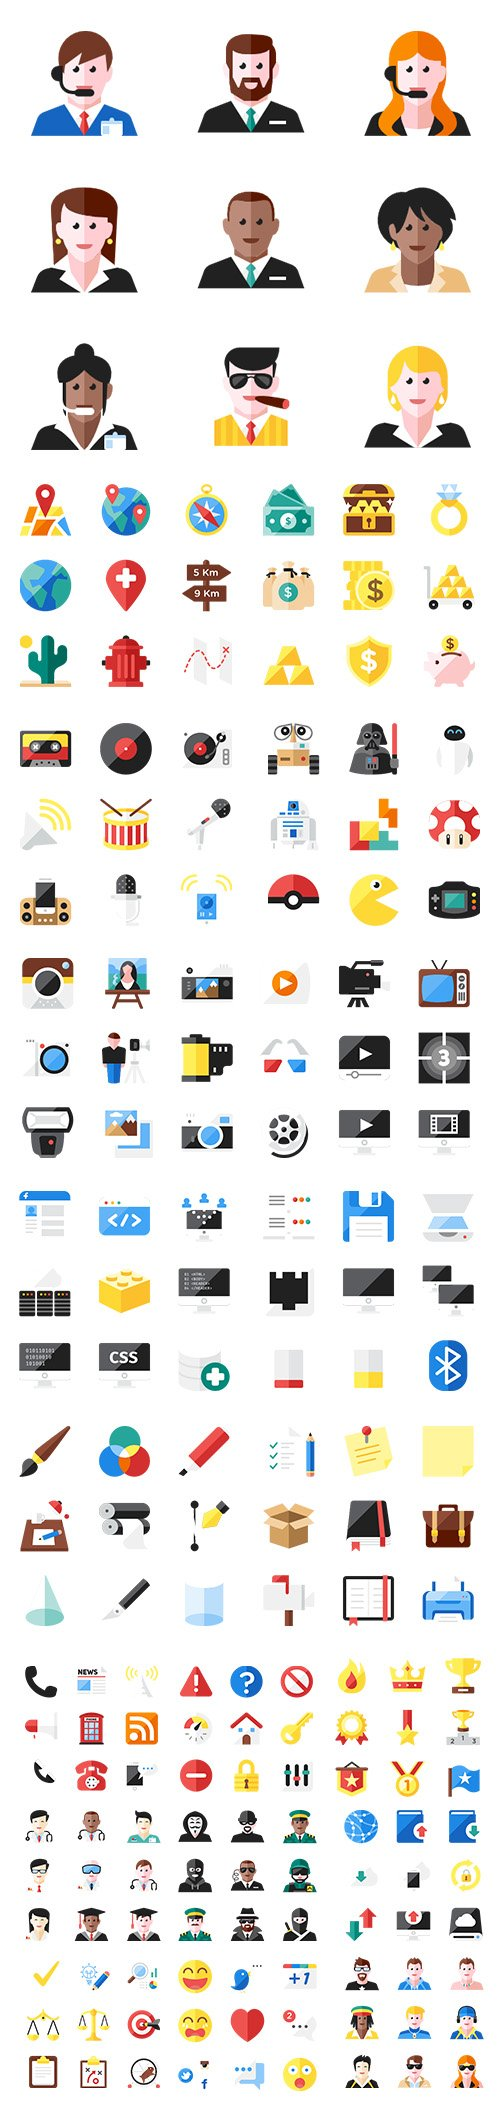 500+ Color Essential Vector Icons Pack